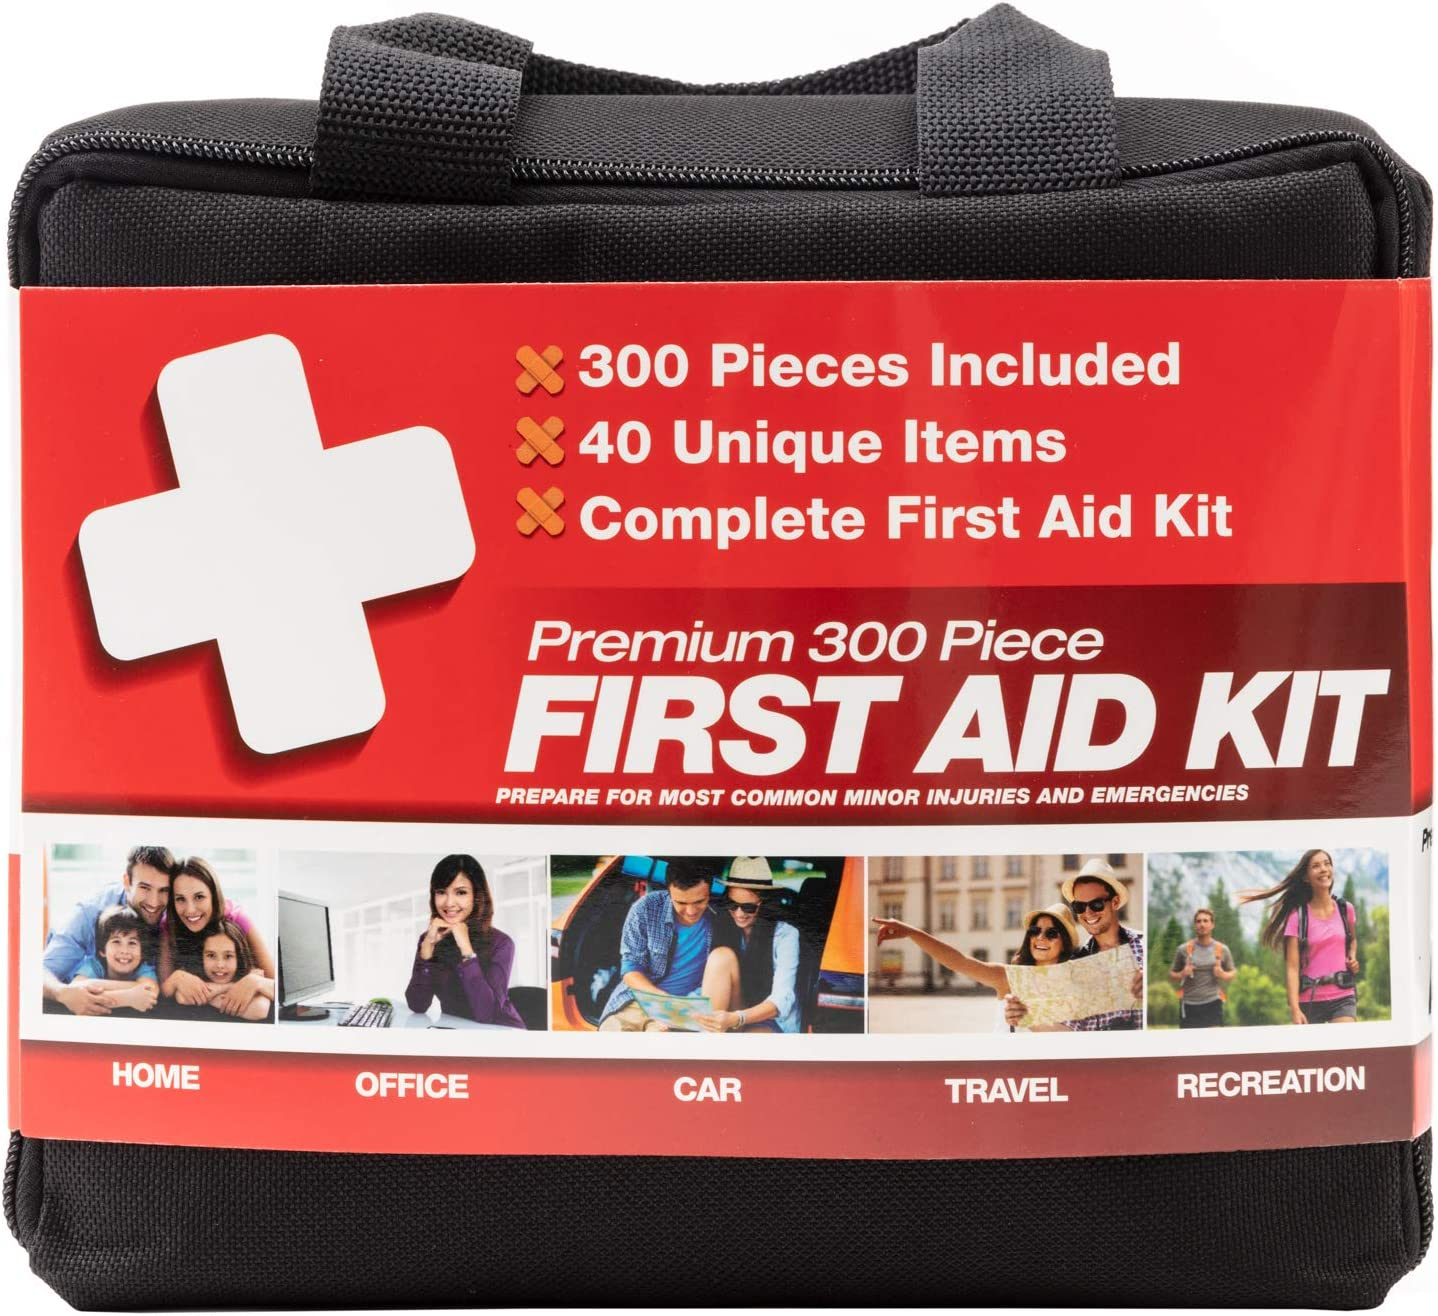 M2 BASICS 300 Piece (40 Unique Items) First Aid Kit | Free First Aid Guide | Emergency Medical Supply | for Home, Office, Outdoors, Car, Survival, Workplace: Health & Personal Care